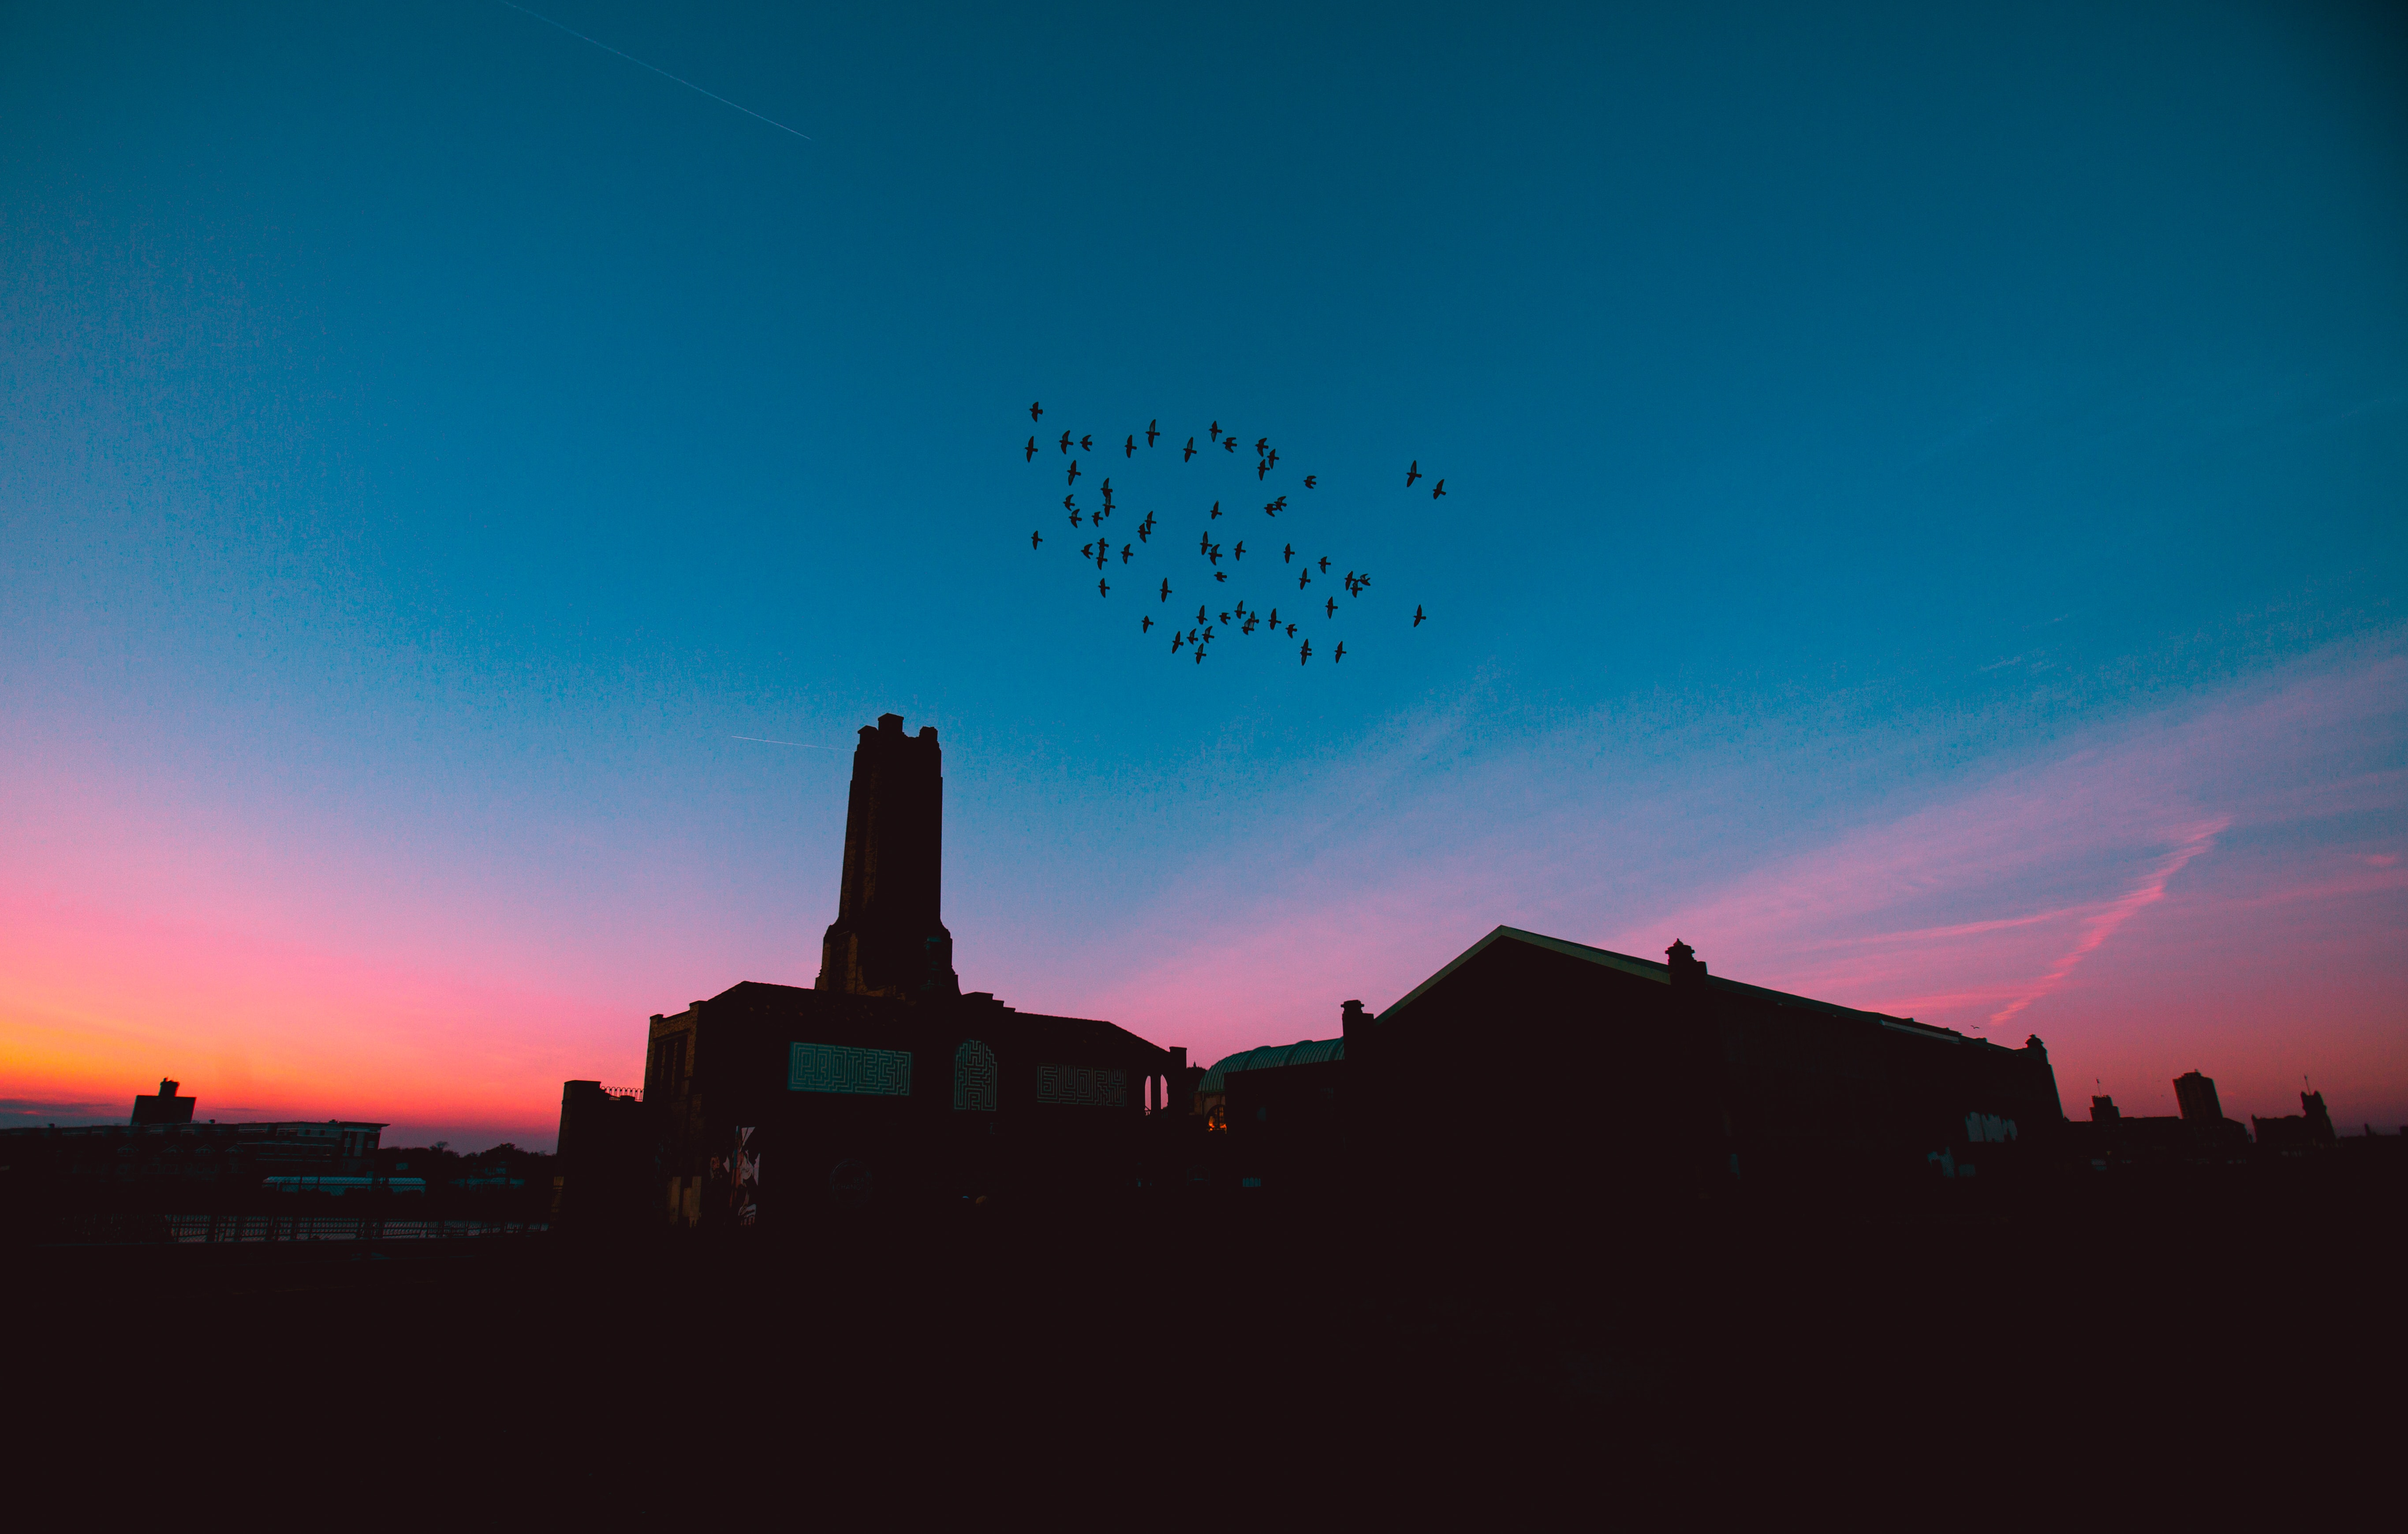 A flock of birds in silhouette over an industrial chimney during a pink and orange sunset at Ashbury Park.